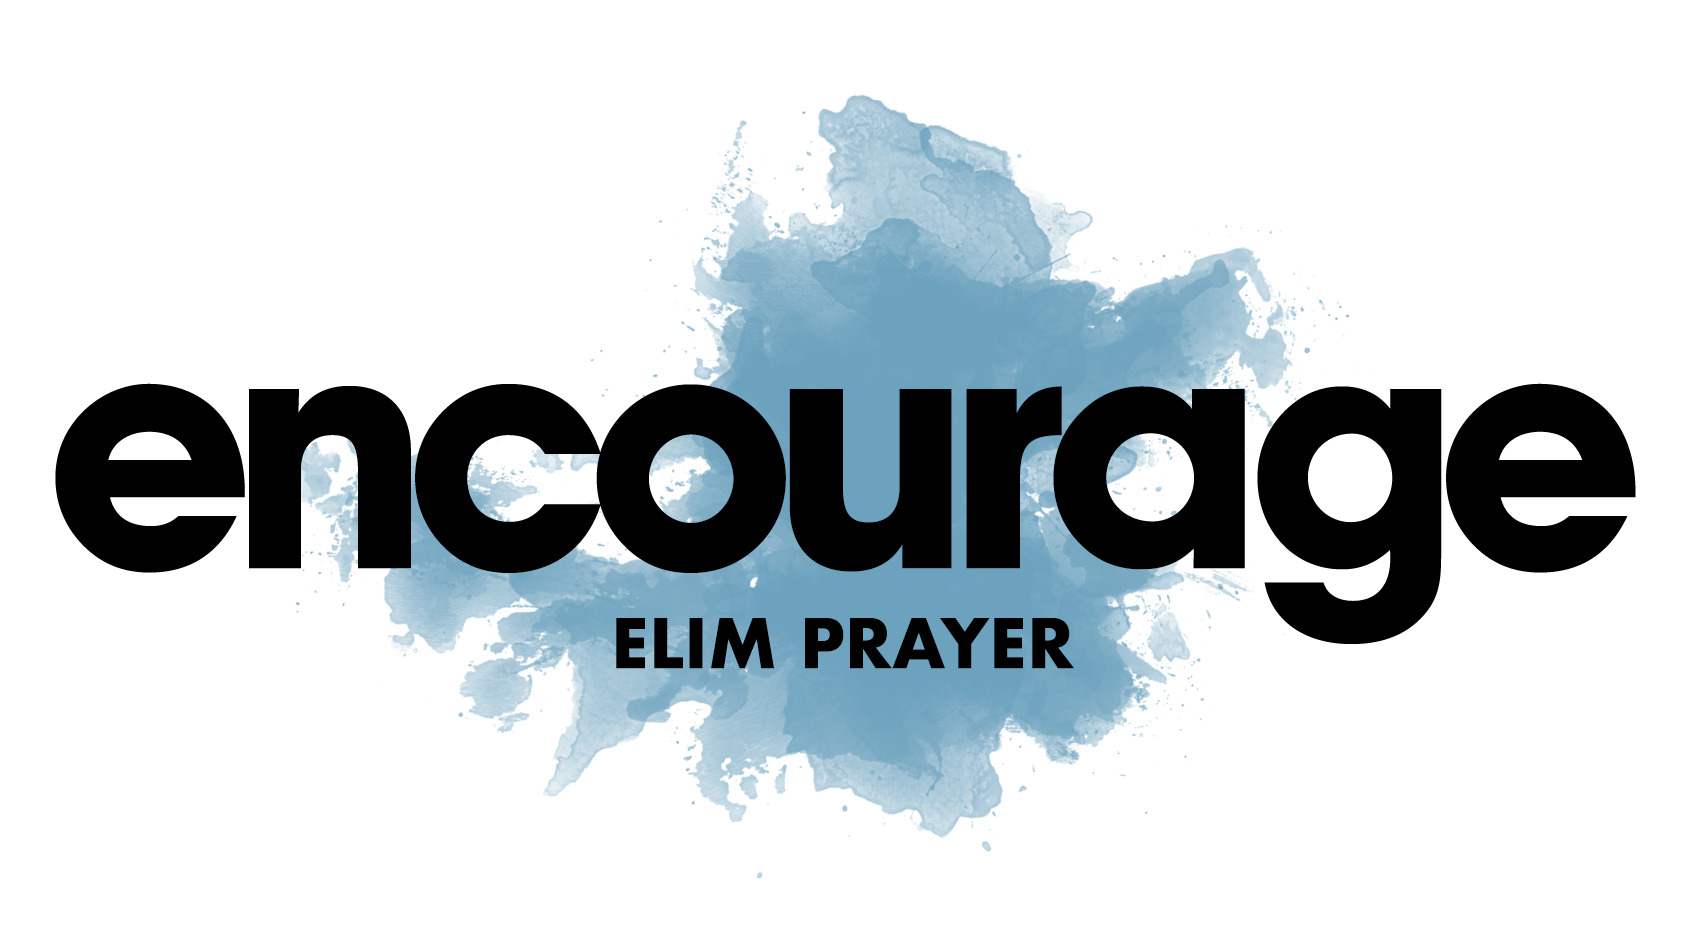 EP-Encourage-Icon-1690